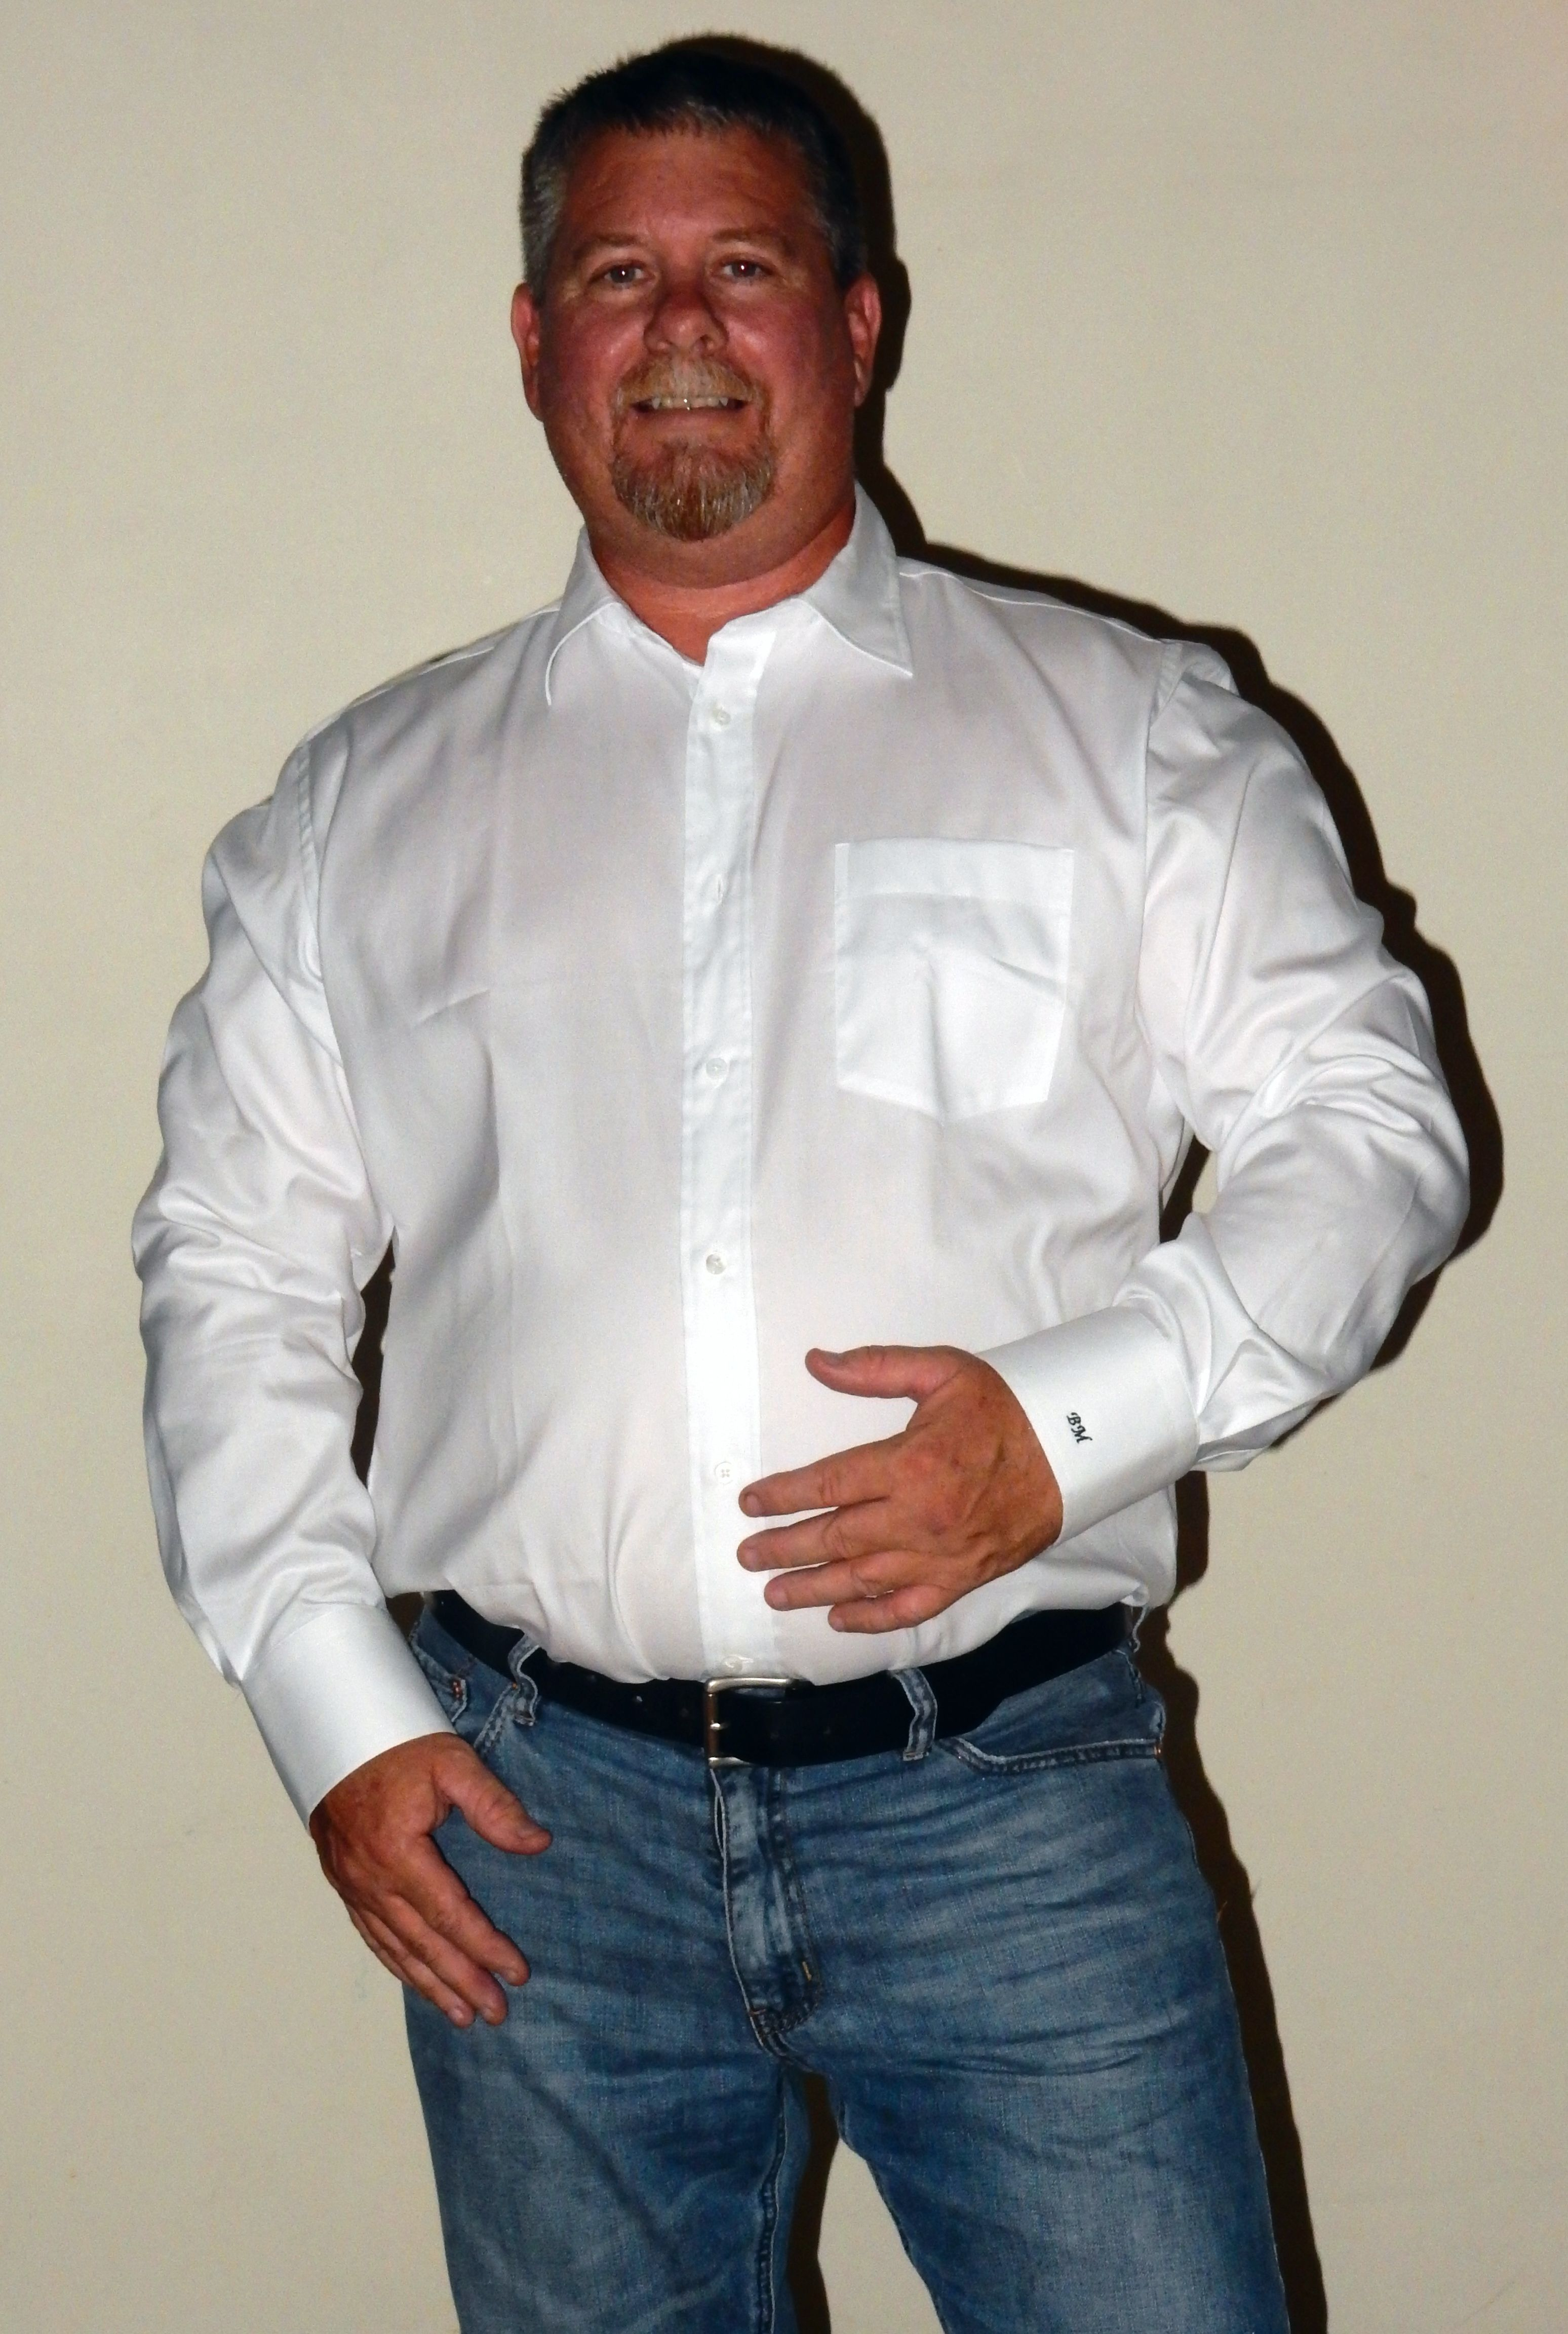 T4L Review - Custom White Shirt  Configure your own at http://www.tailor4less.com/en/men/custom-dress-shirts/